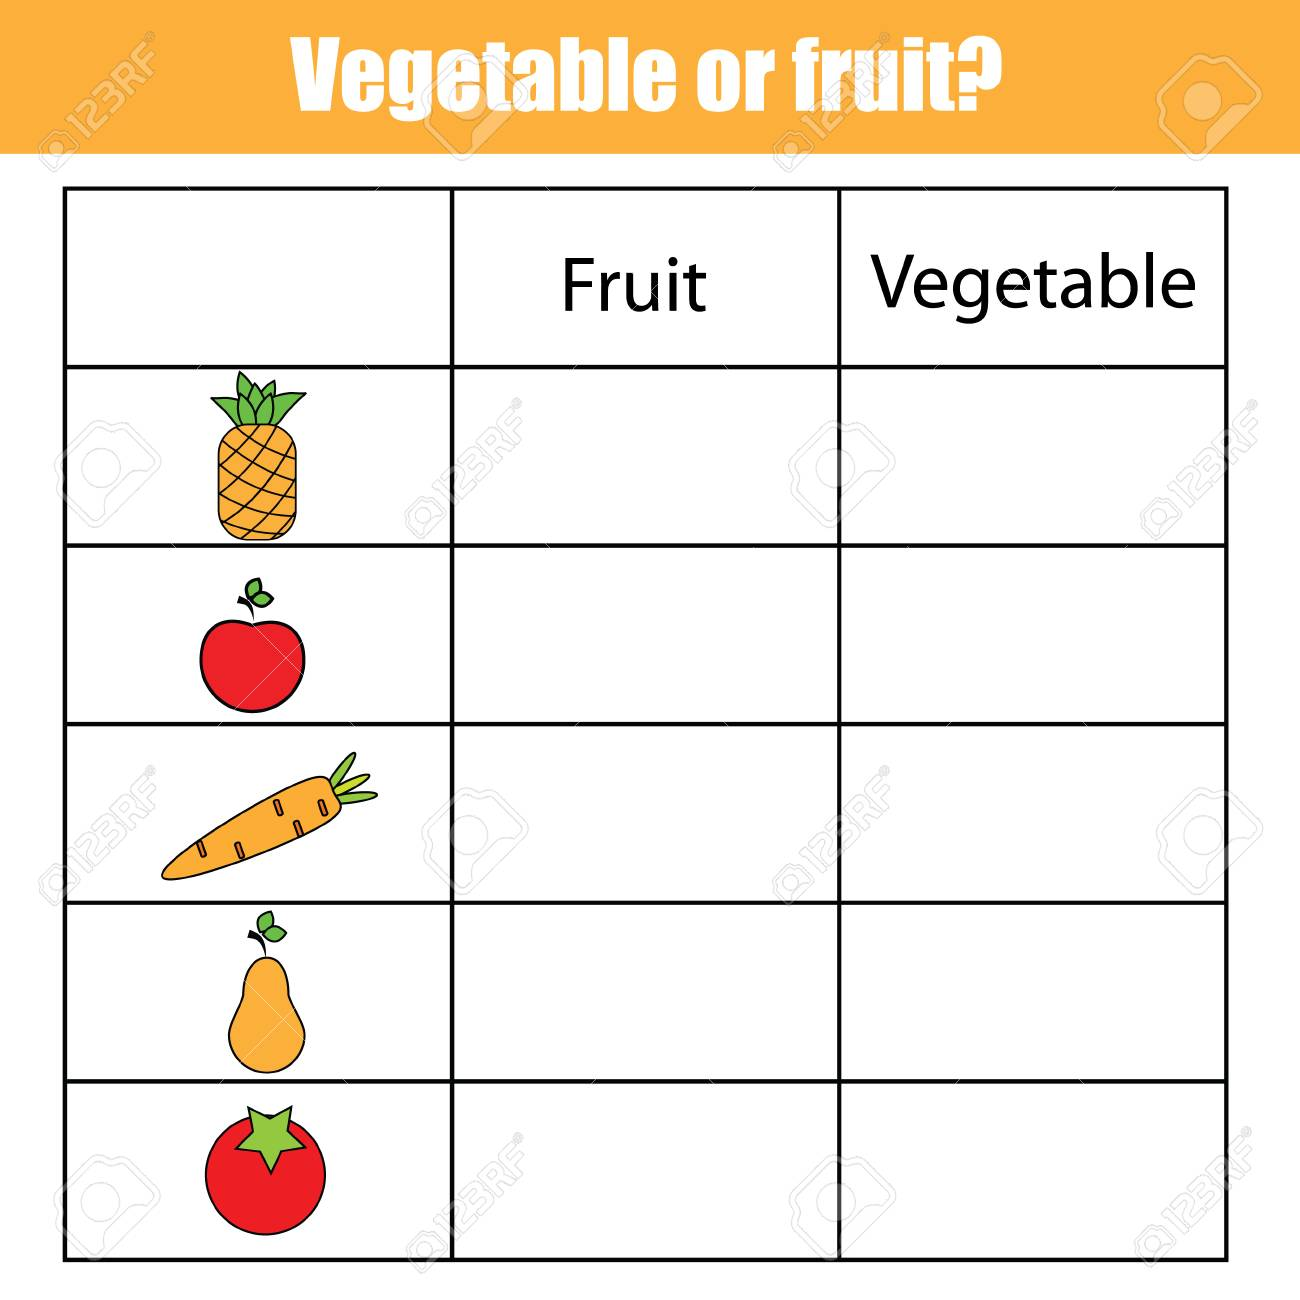 photograph relating to Vegetable Printable named Fruit or vegetable instructive youngsters video game, printable young children..